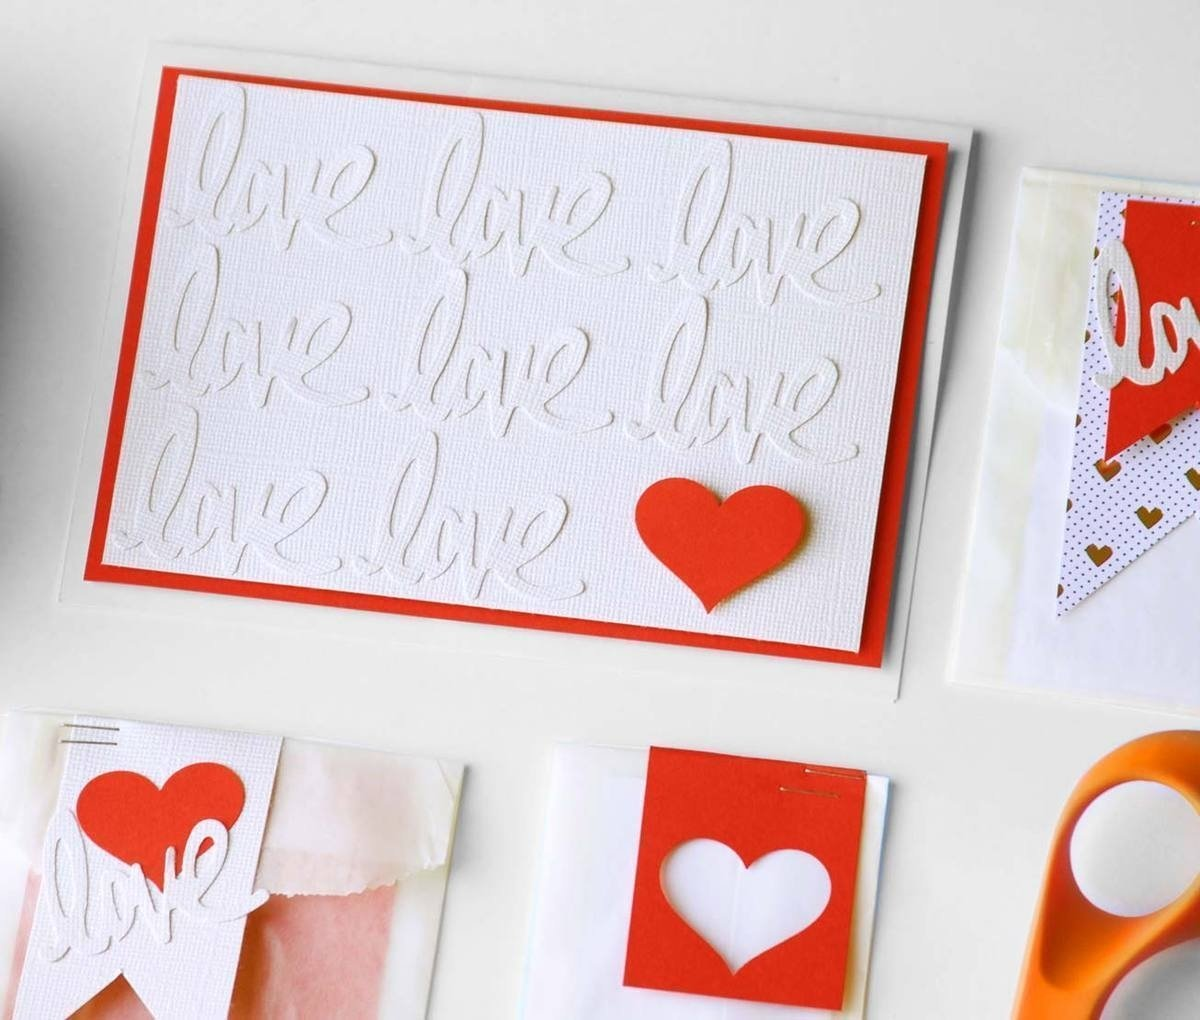 10 Fashionable Valentine Day Card Ideas Homemade valentines day cards gift bag ideas 1 2020